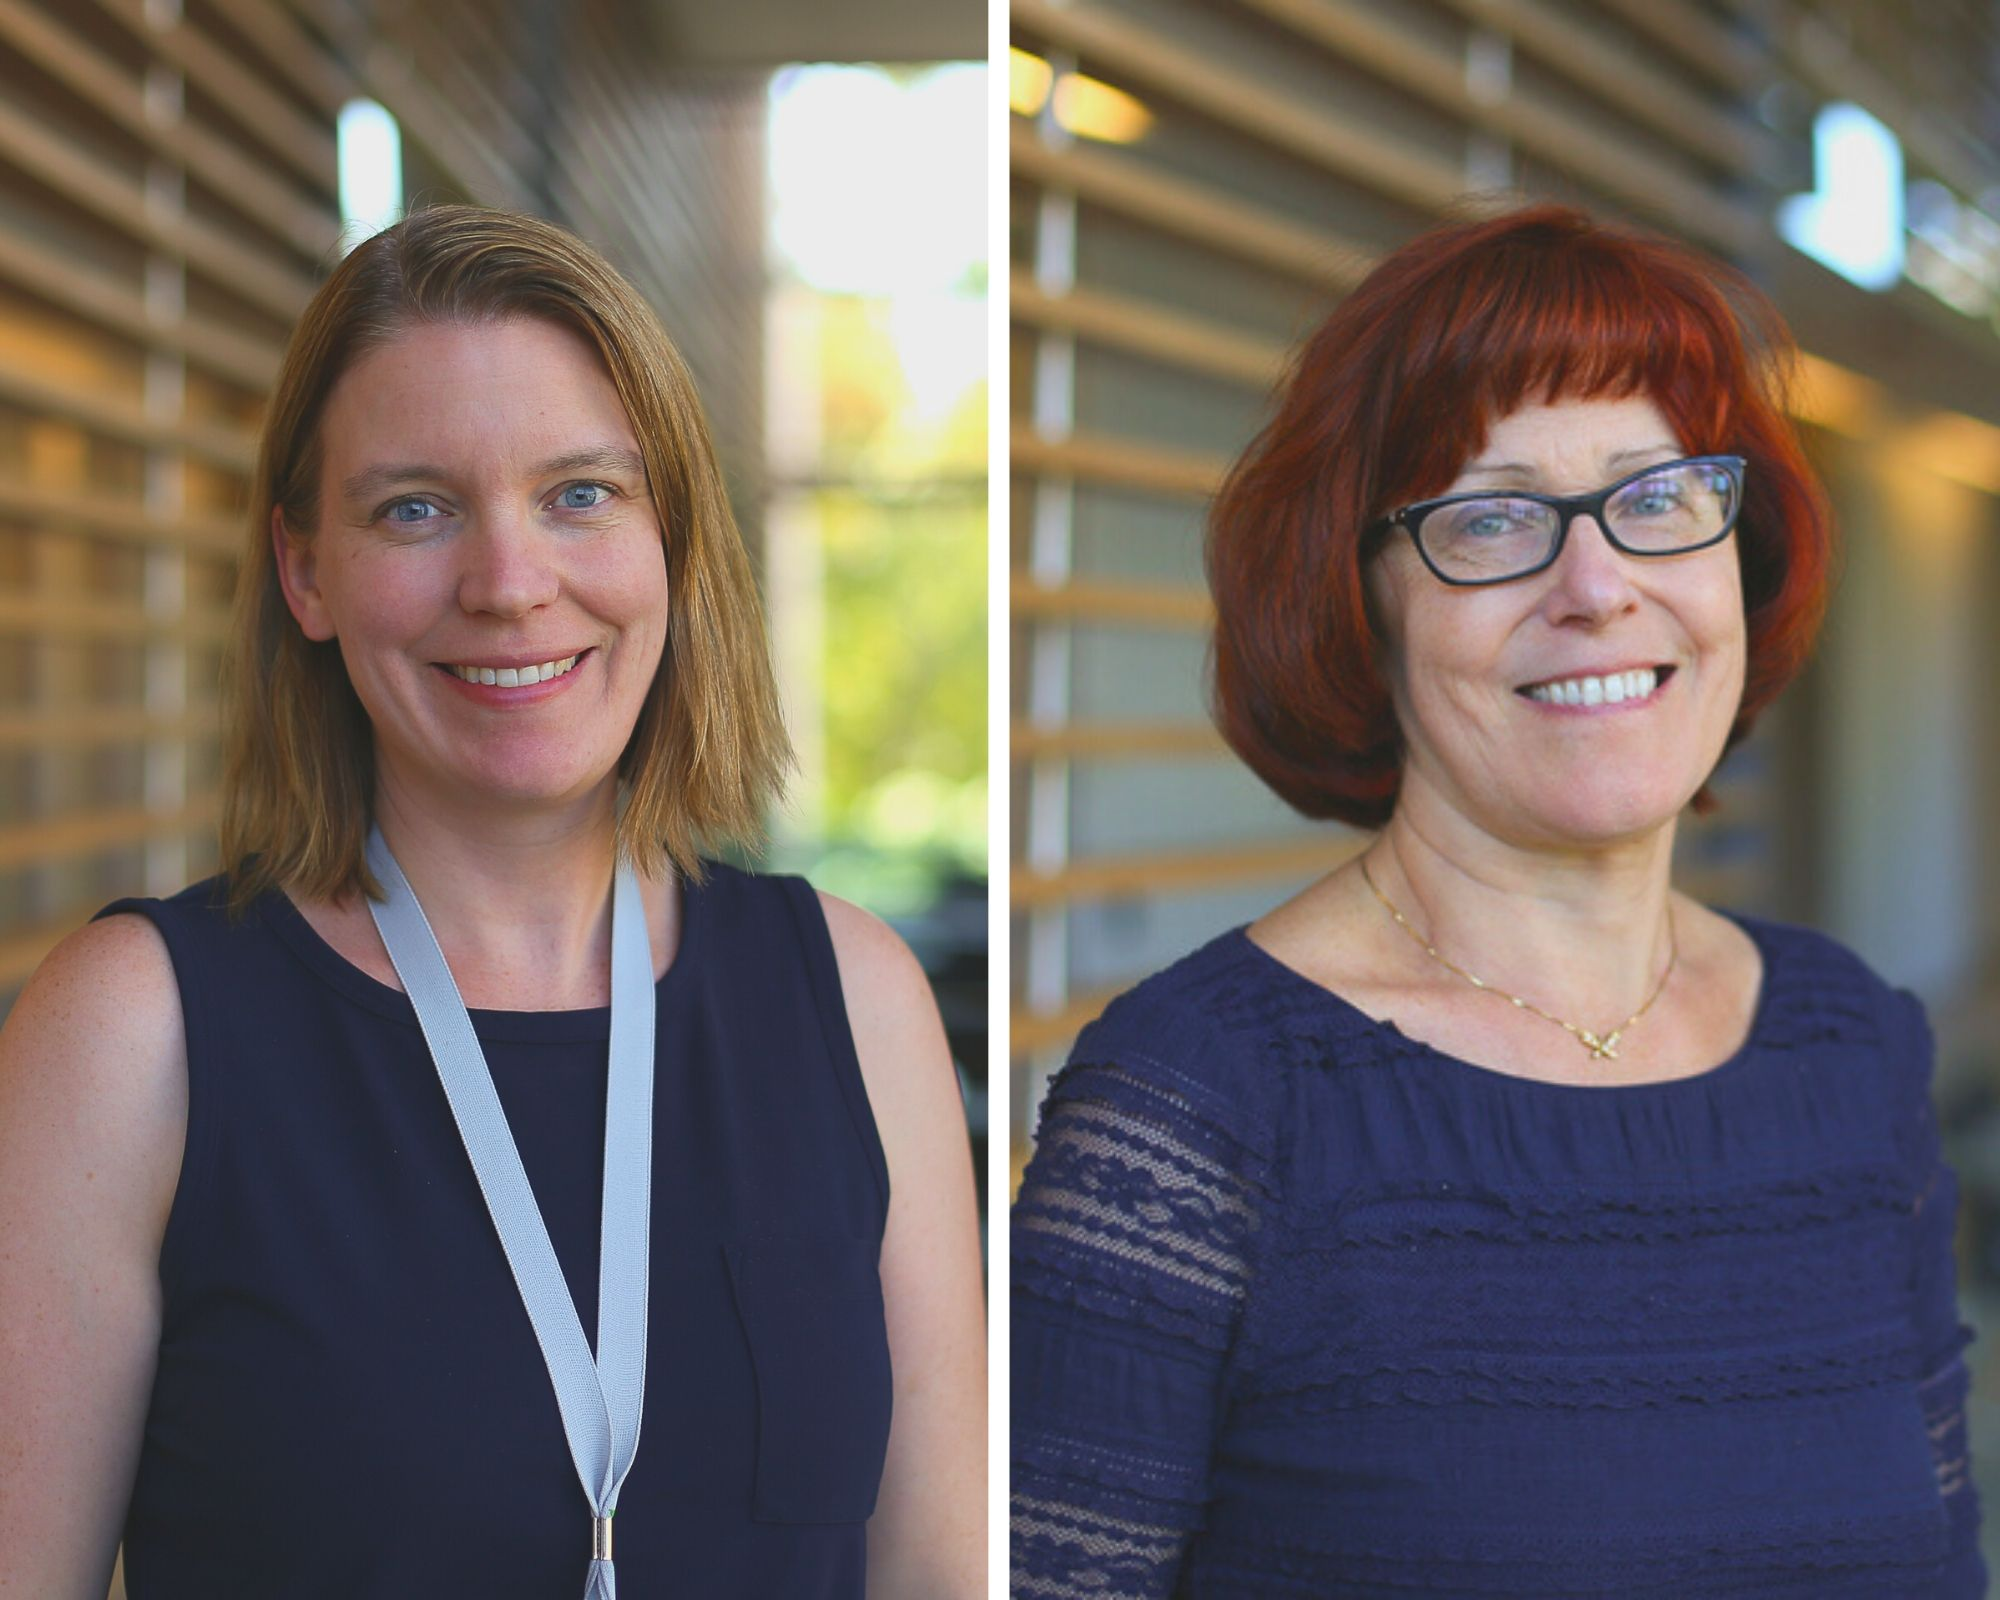 Drs. Tricia Cottrell and Anna Panchenko receive Investigator Awards from OICR.